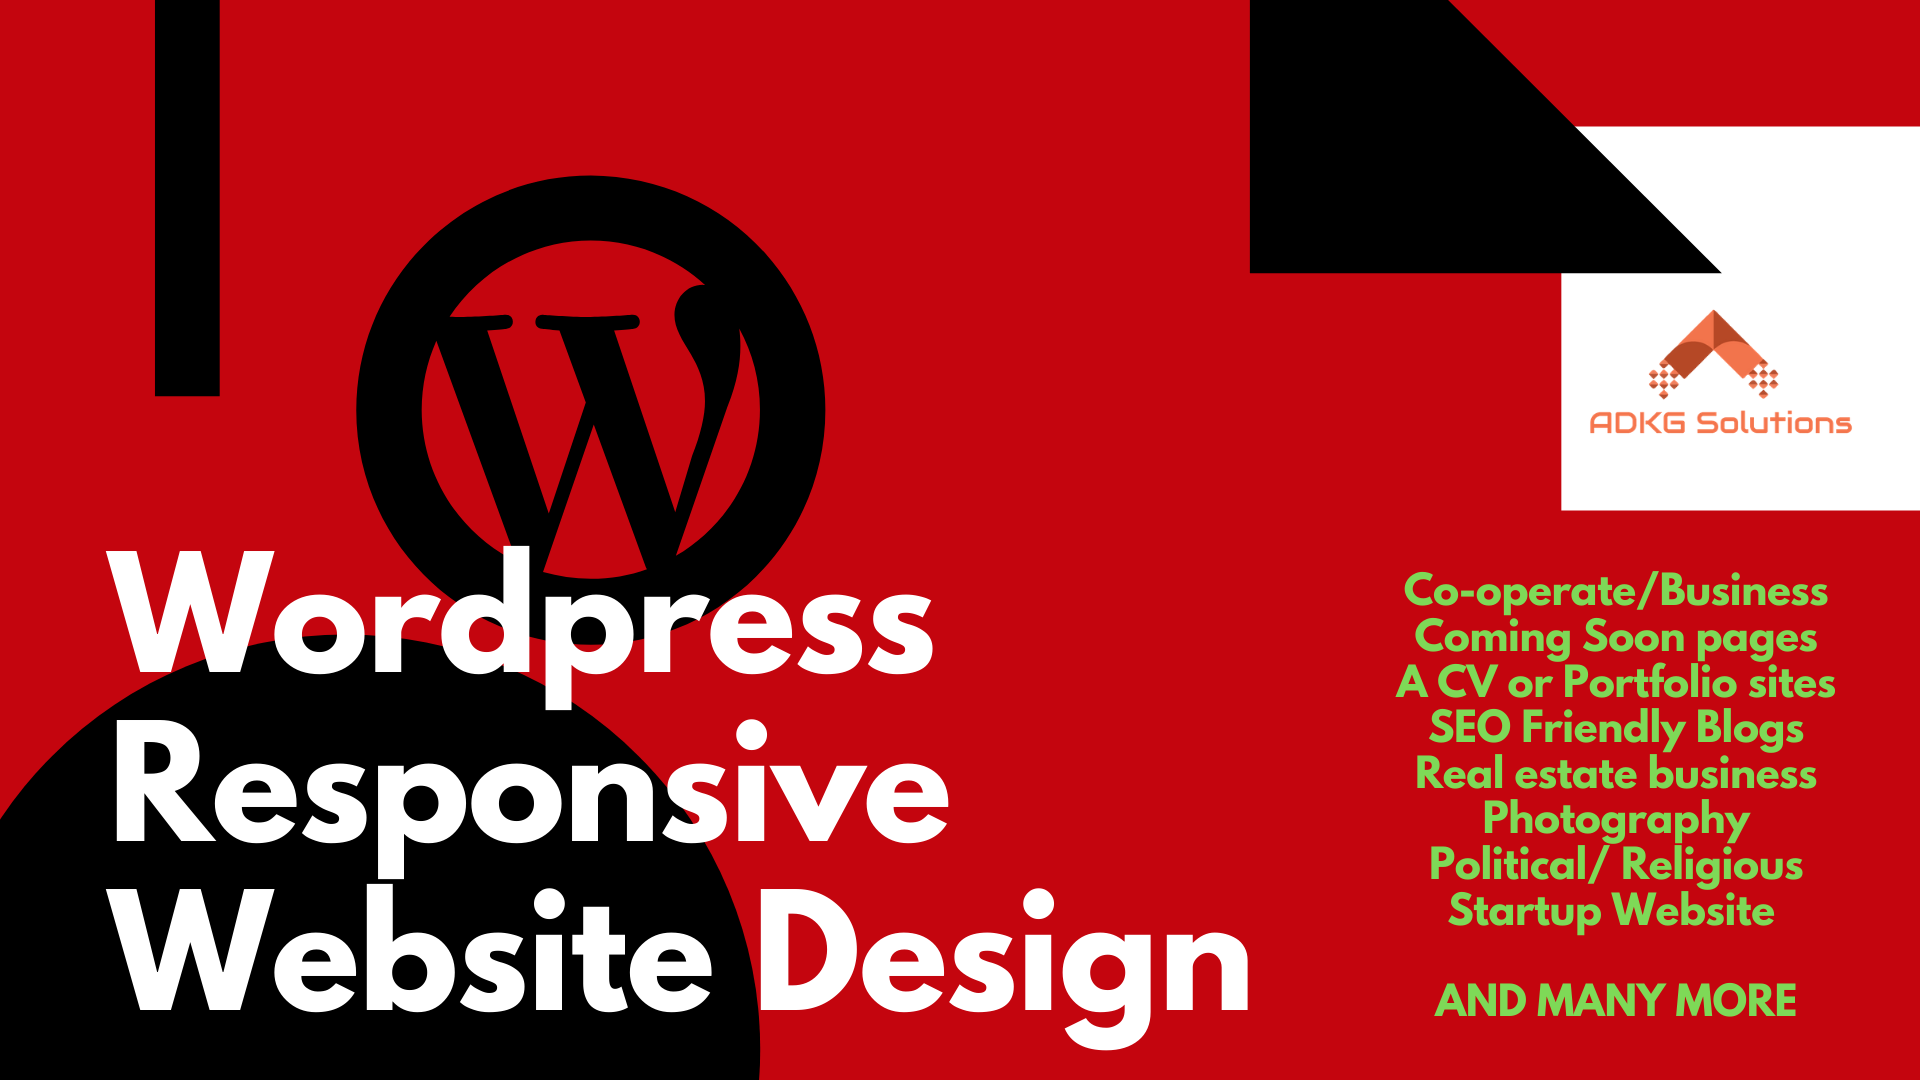 I will build a professional wordpress website design responsive